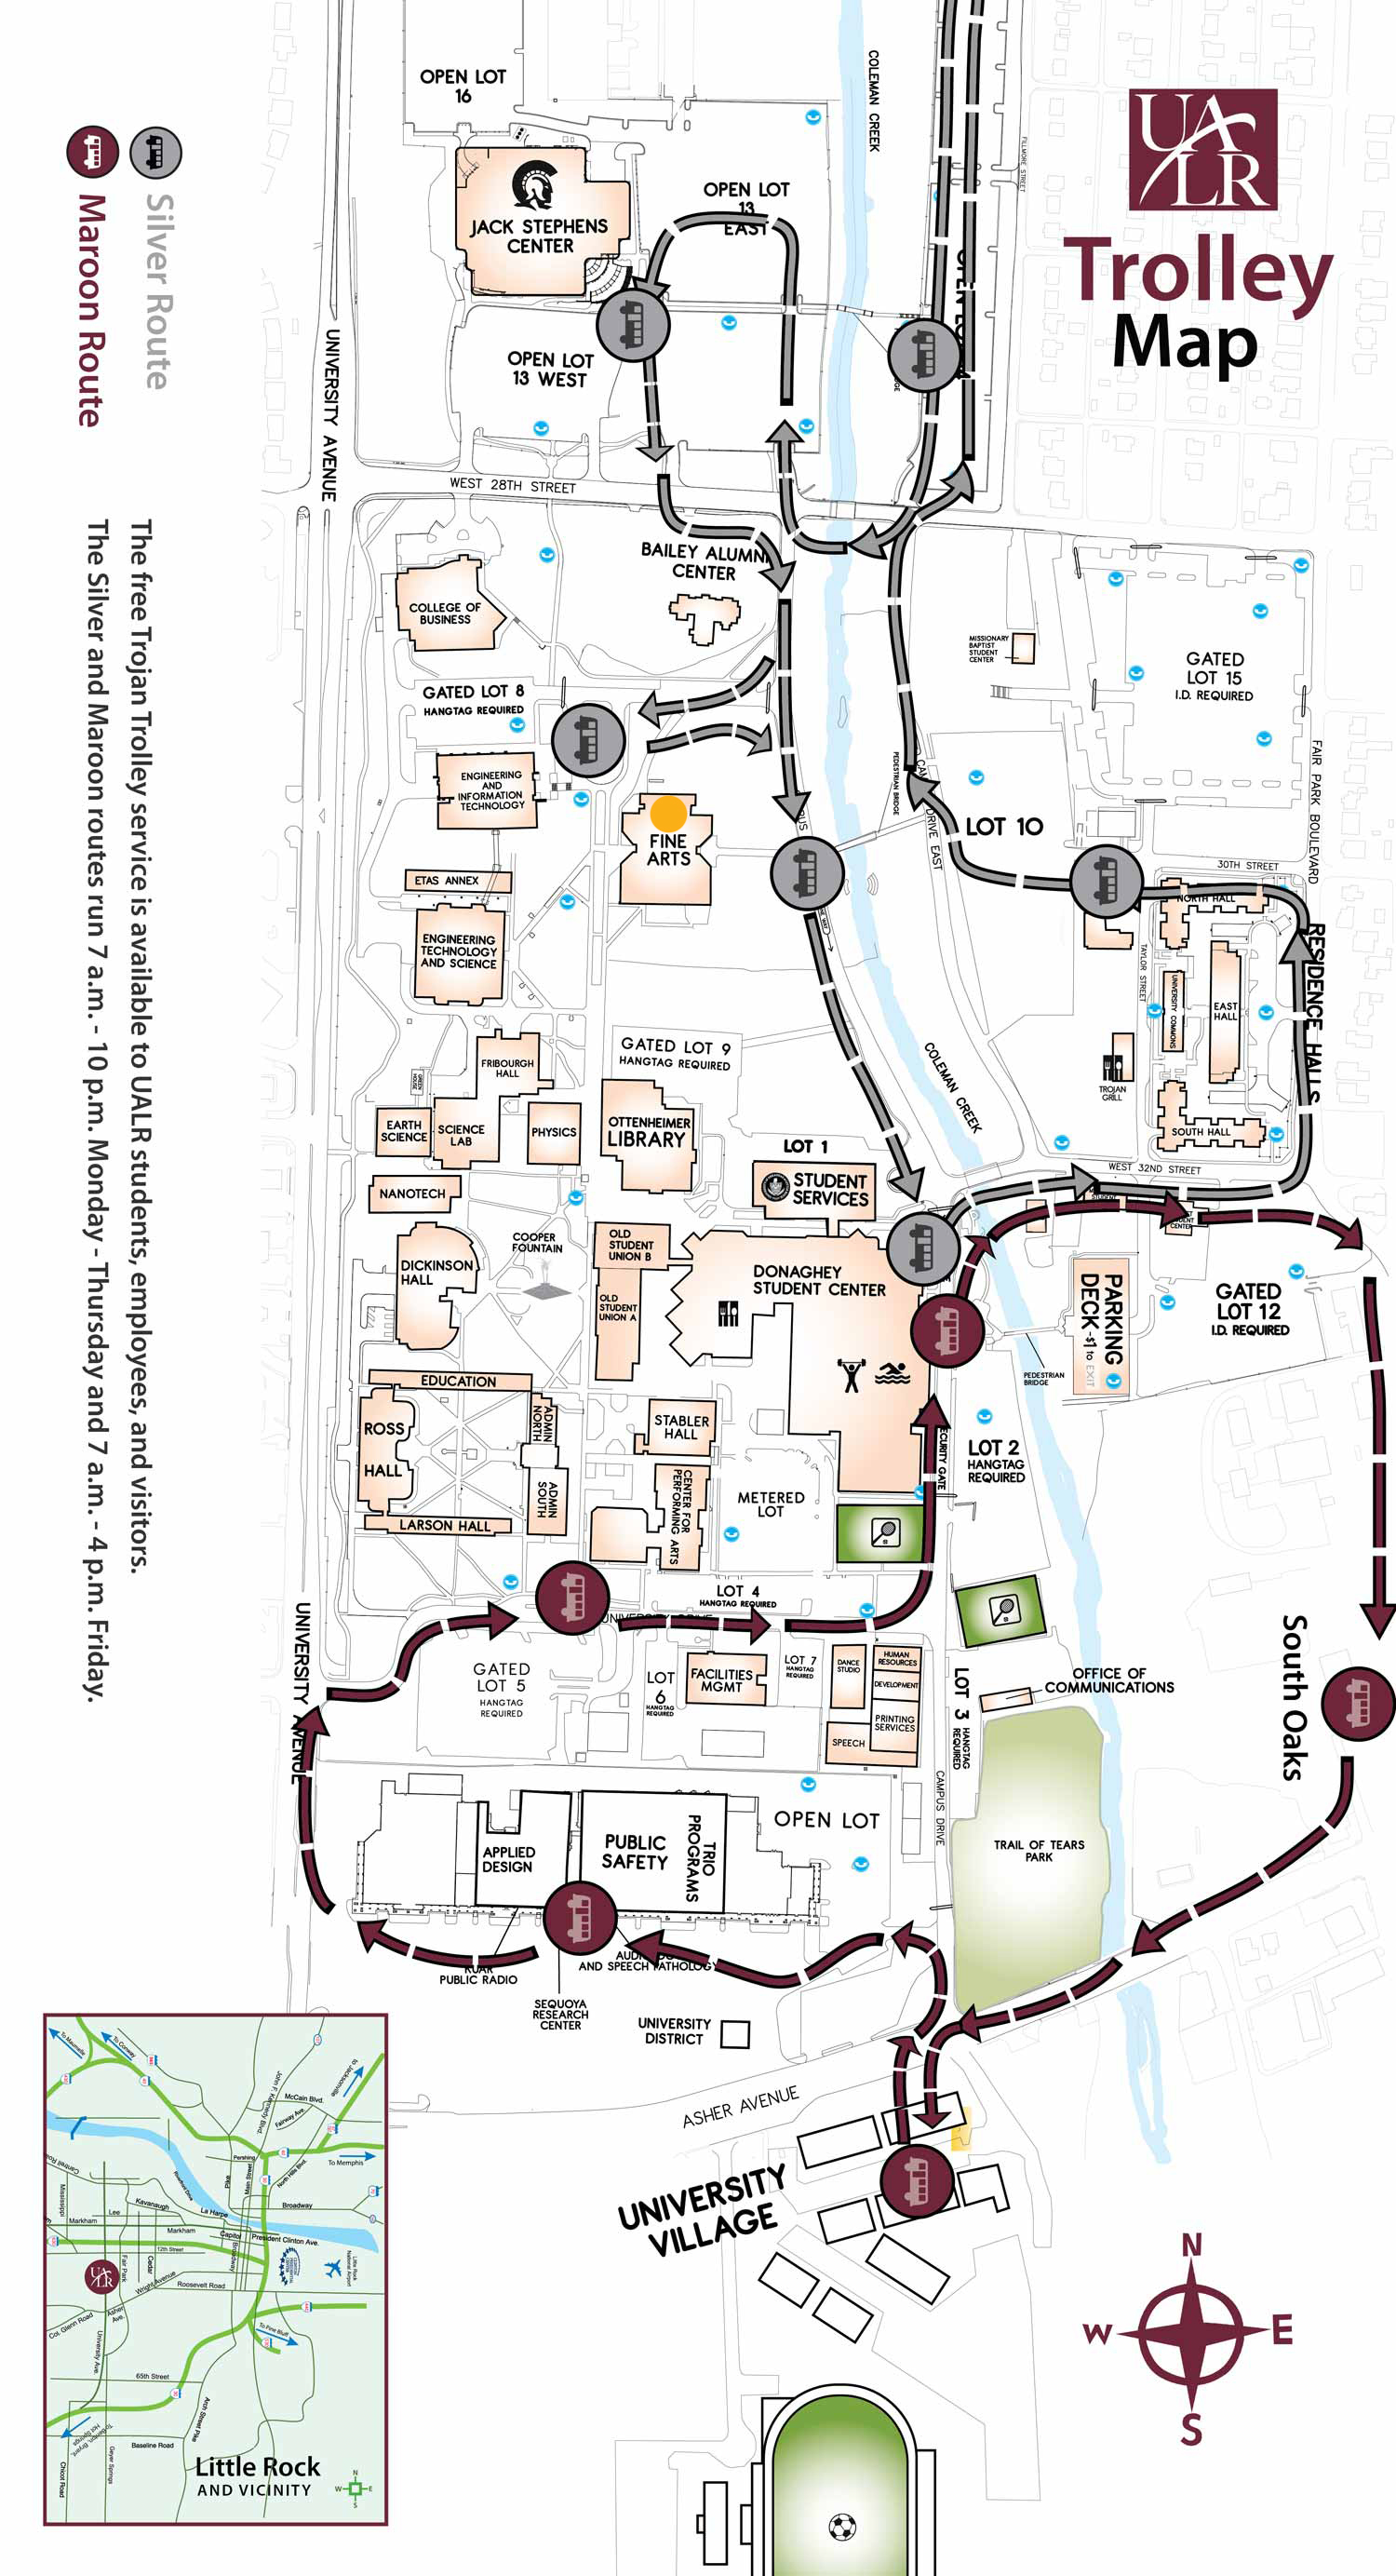 Trolley Map and directions to Fine Arts Building, UALR